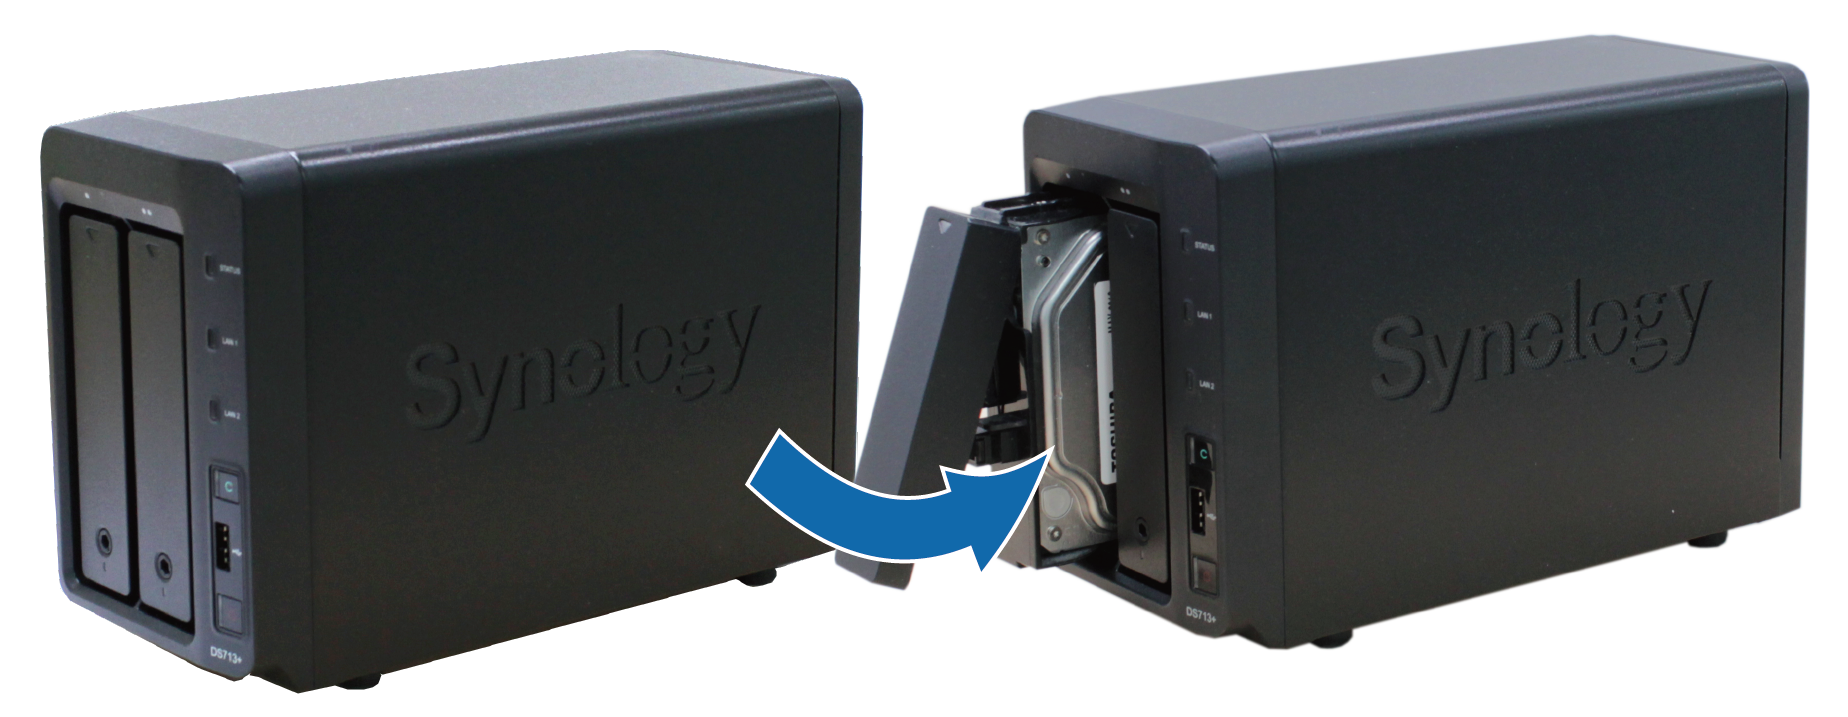 How To Migrate Between Synology Nas Dsm 60 And Later Inc Wire A Structured Wiring Panel Gohts Wiki Install The Temporary Hard Drive In Target